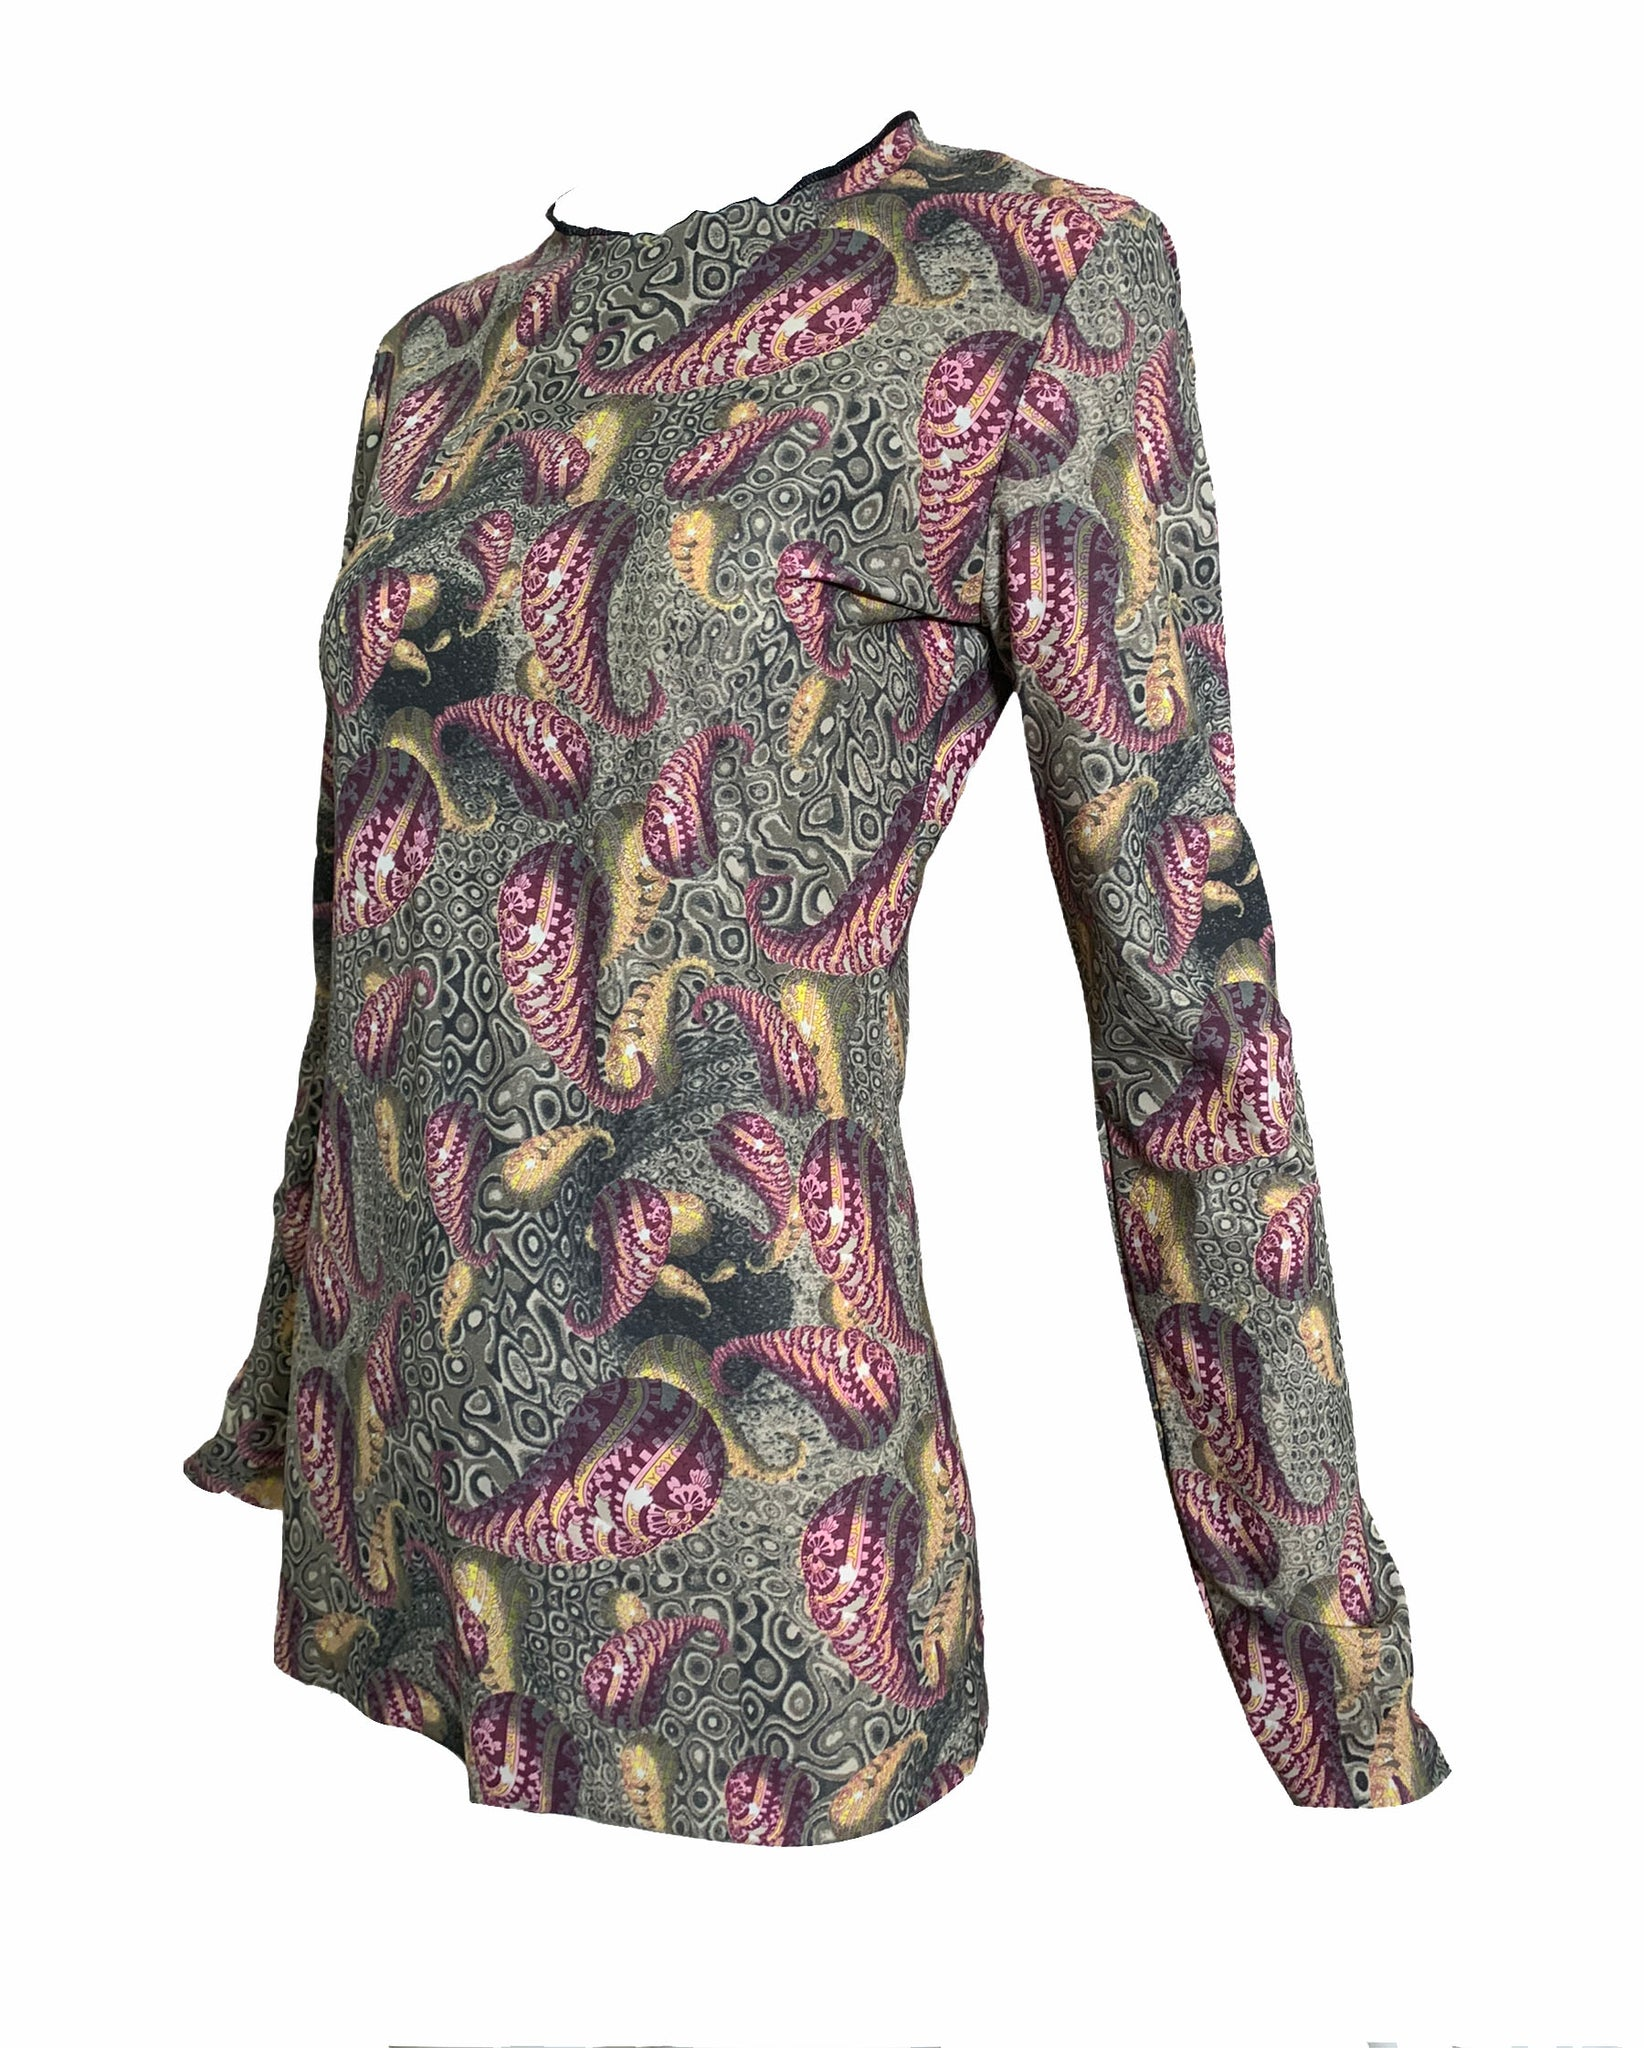 Gaultier Early 2000s Paisley Print Jersey Tee SIDE 2 of 4